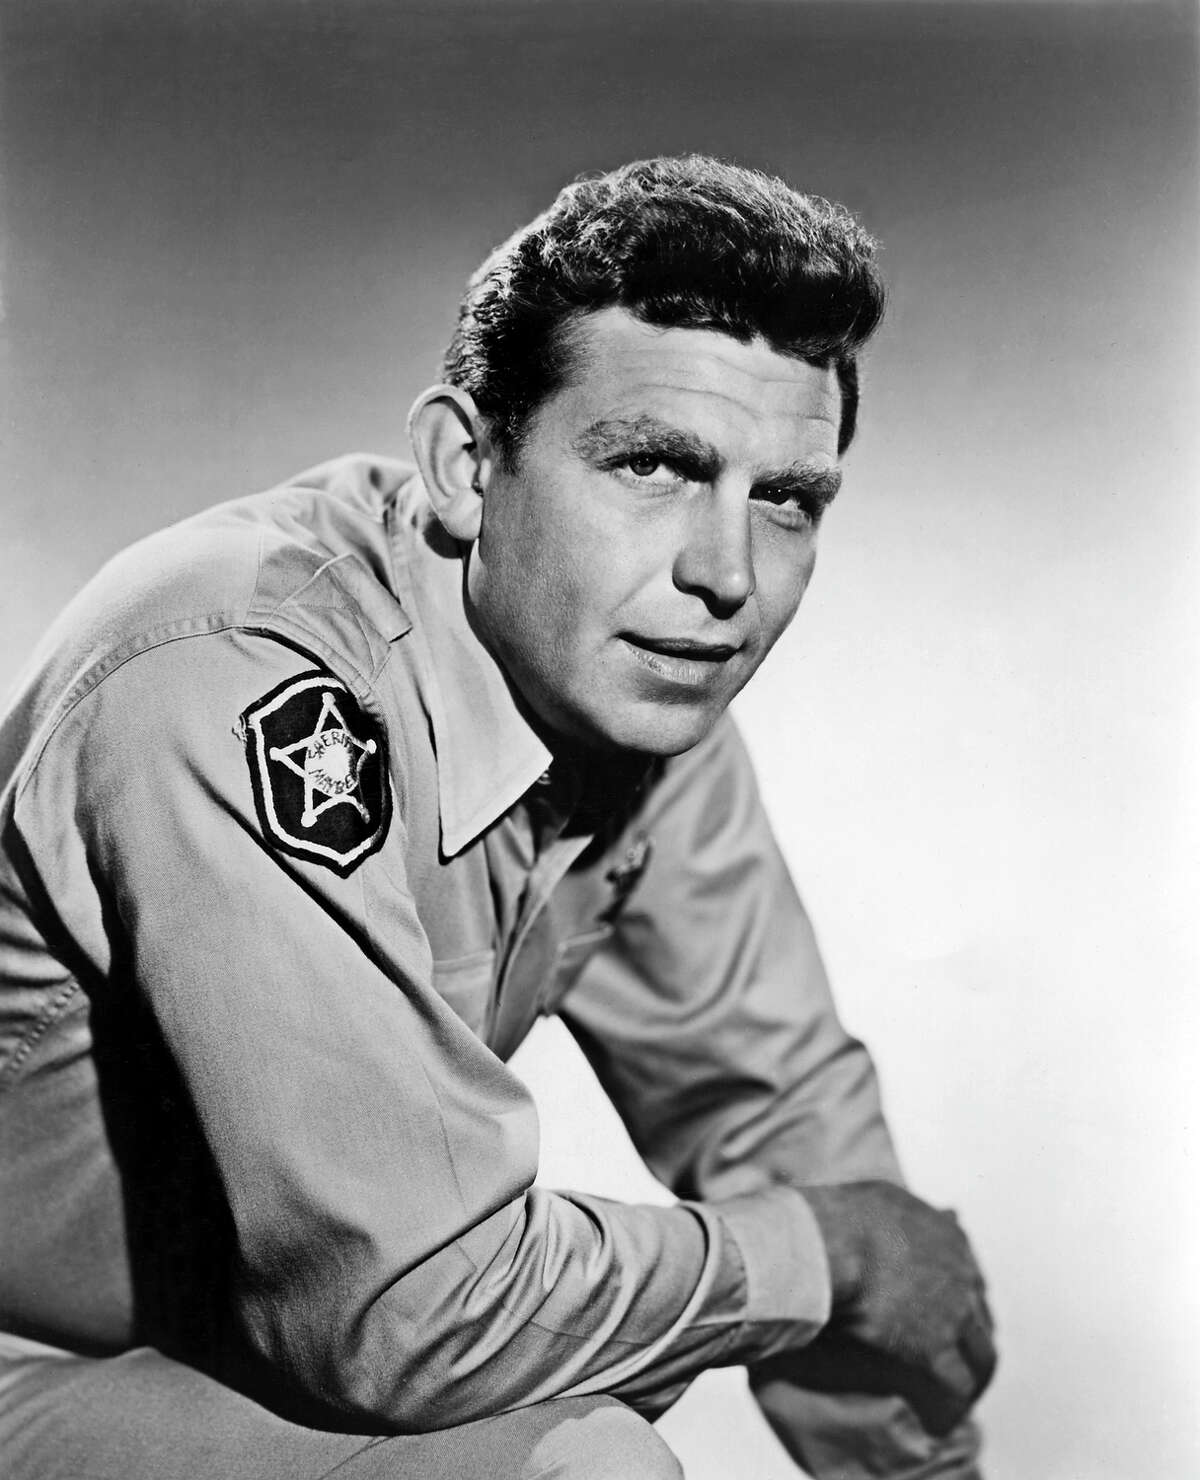 Show: The Andy Griffith ShowDad: Sheriff Andy Taylor (Andy Griffith)Fatherly advice: